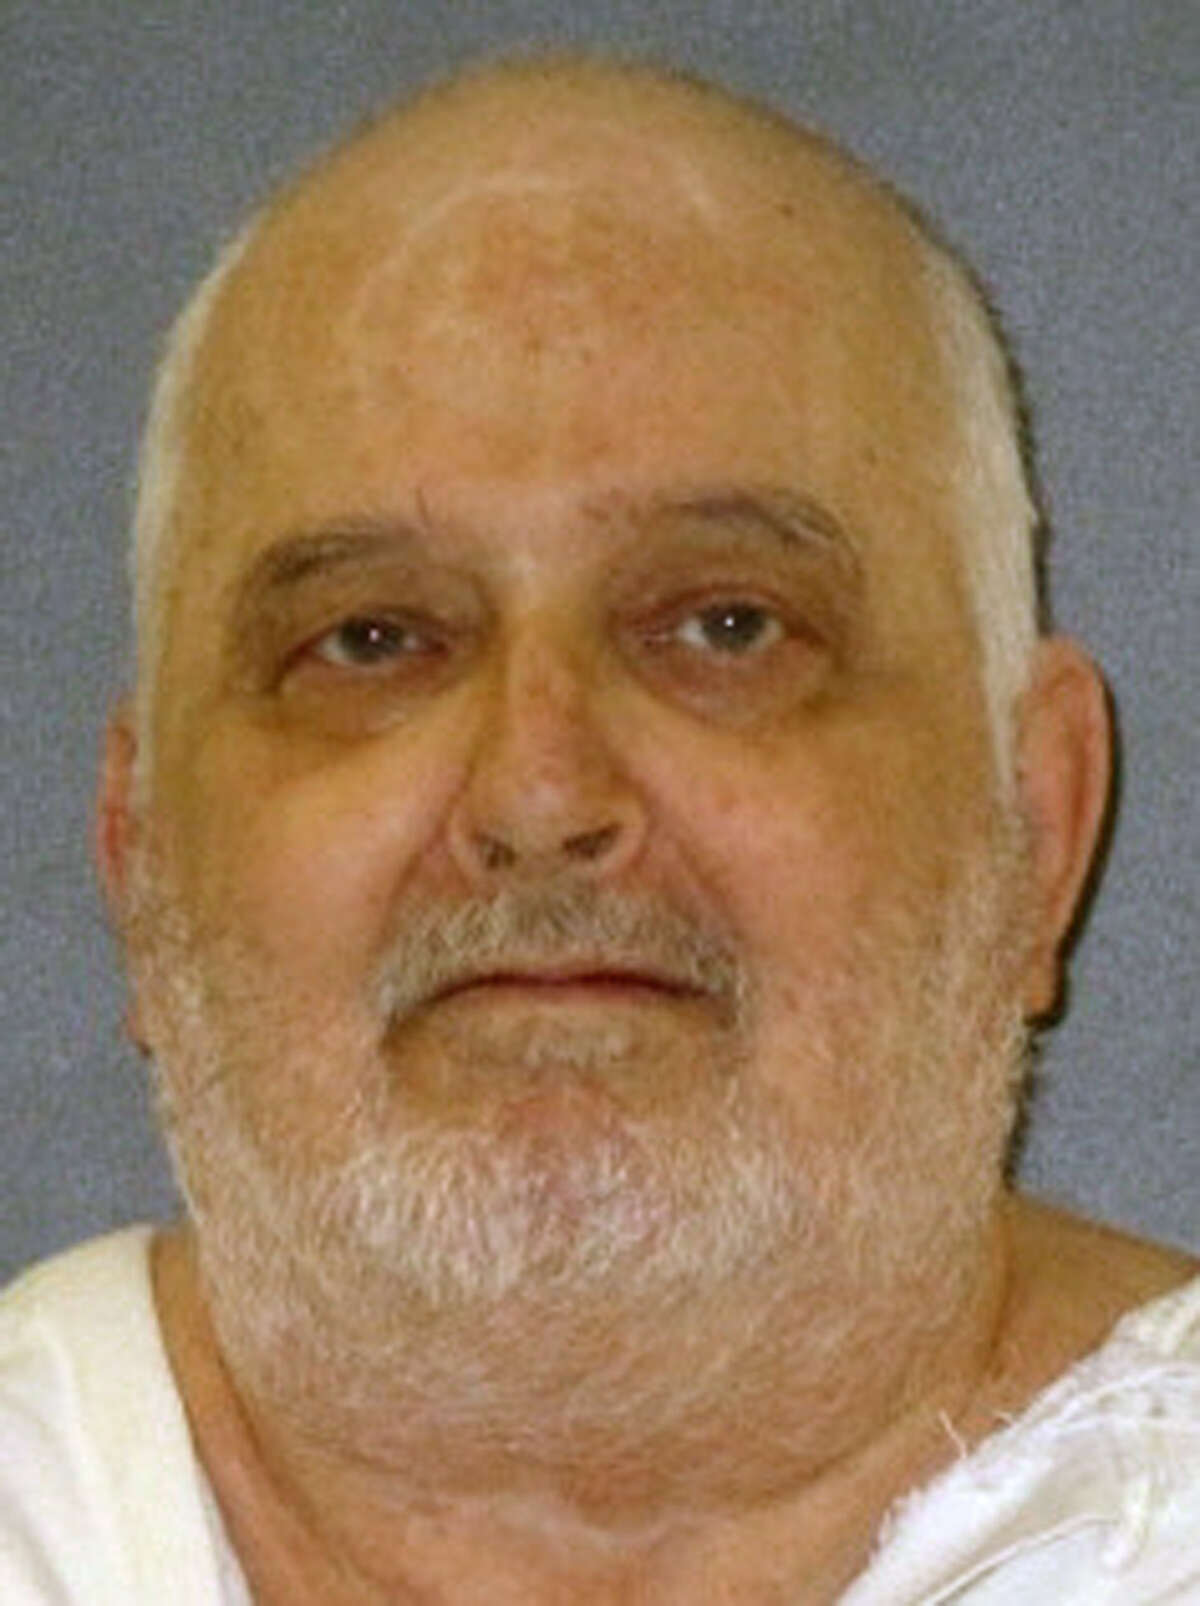 This undated photo provided by the Texas Department of Criminal Justice shows death row inmate Danny Bible. The U.S. Supreme Court has refused an appeal from Bible on death row for the 1979 slaying of a woman who went to his house in Houston to use a telephone and was found later stabbed 11 times with an ice pick, raped and dumped on the bank of a bayou. The high court, without comment Tuesday, Oct. 11, 2016, rejected the appeal of 65-year-old Bible. (Texas Department of Criminal Justice via AP)